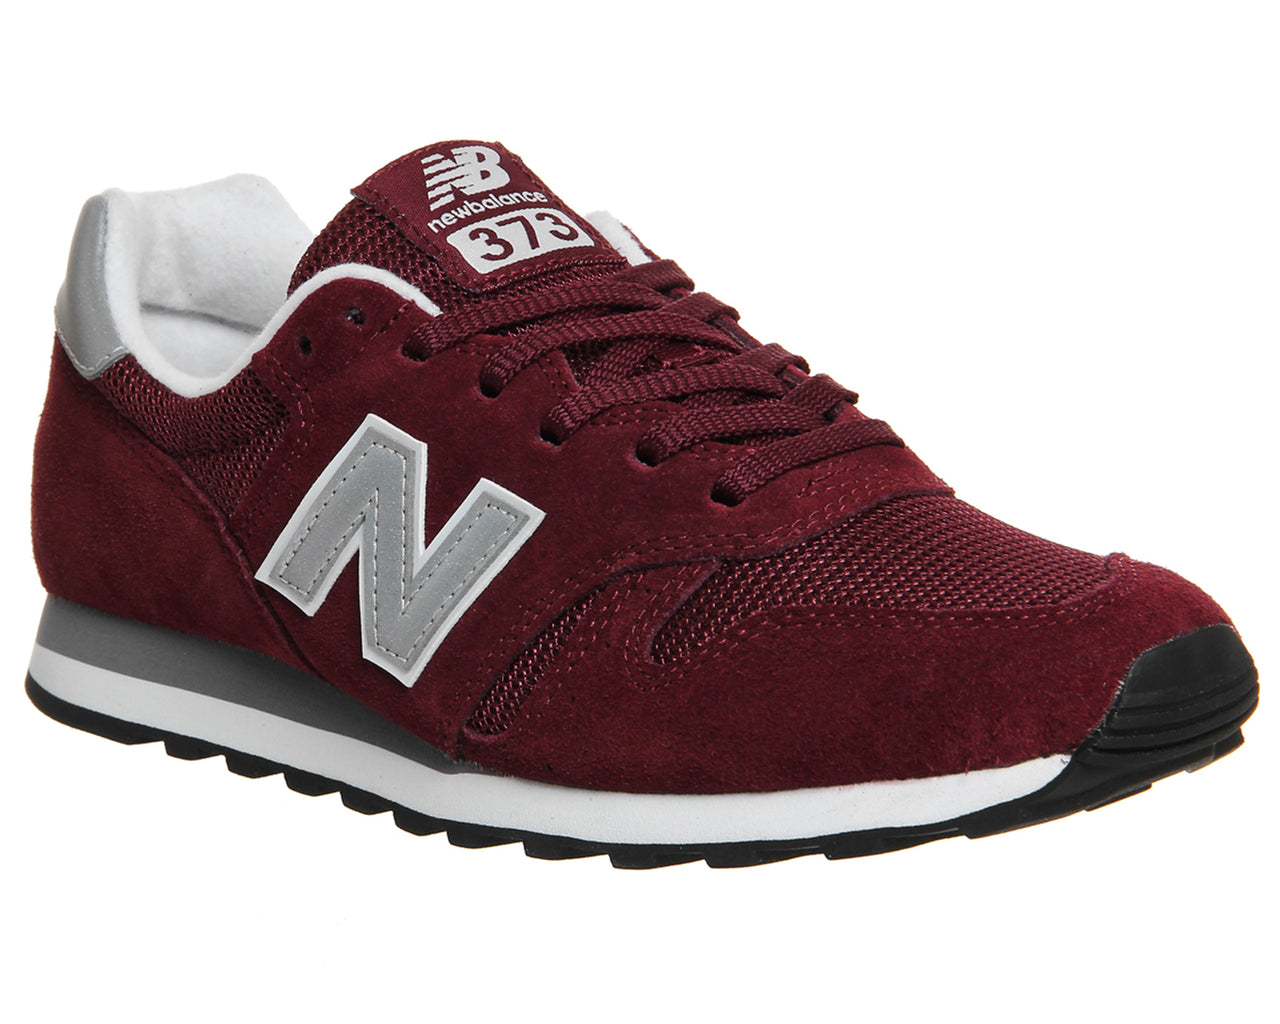 New Balance 373 Burgundy Silver Trainers